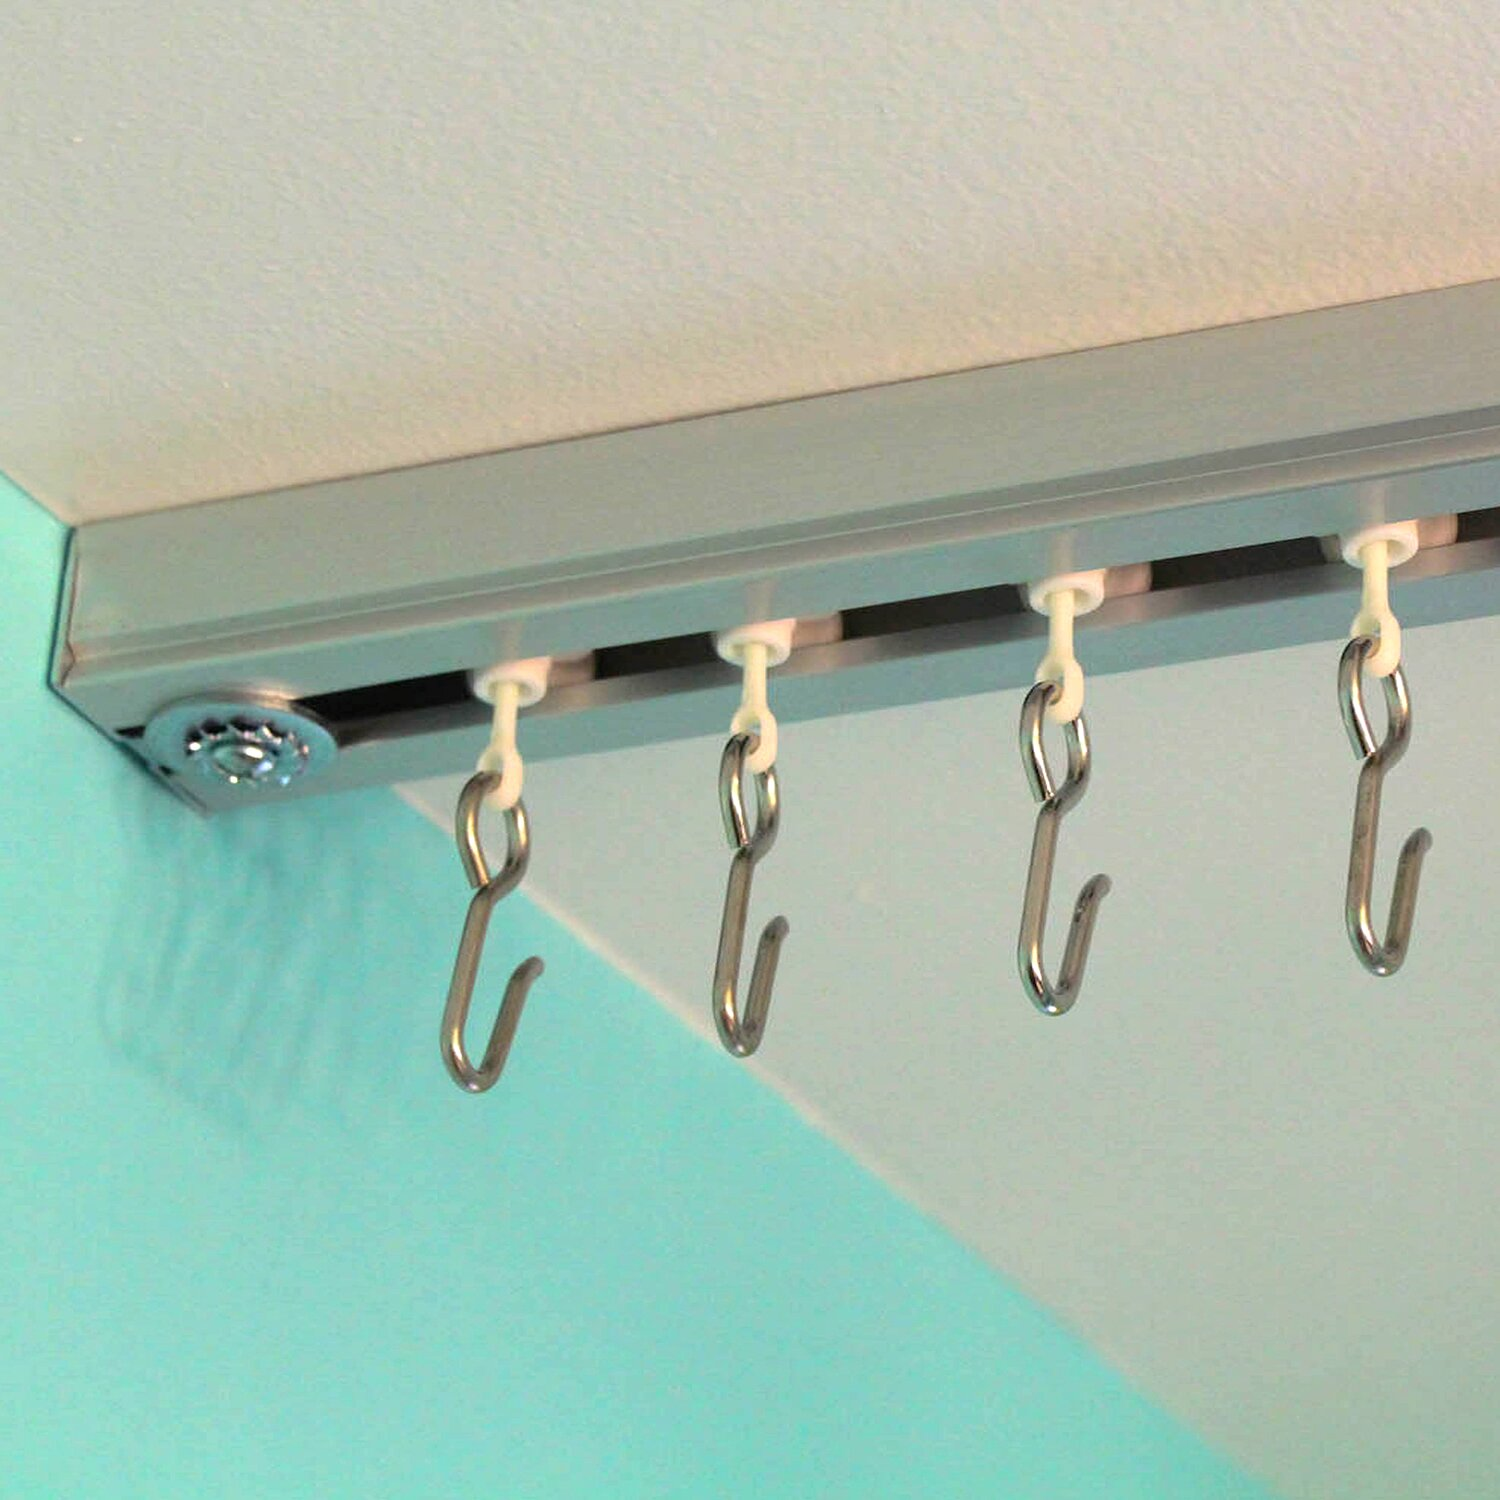 Curtain room dividers track - Curtain Track Set